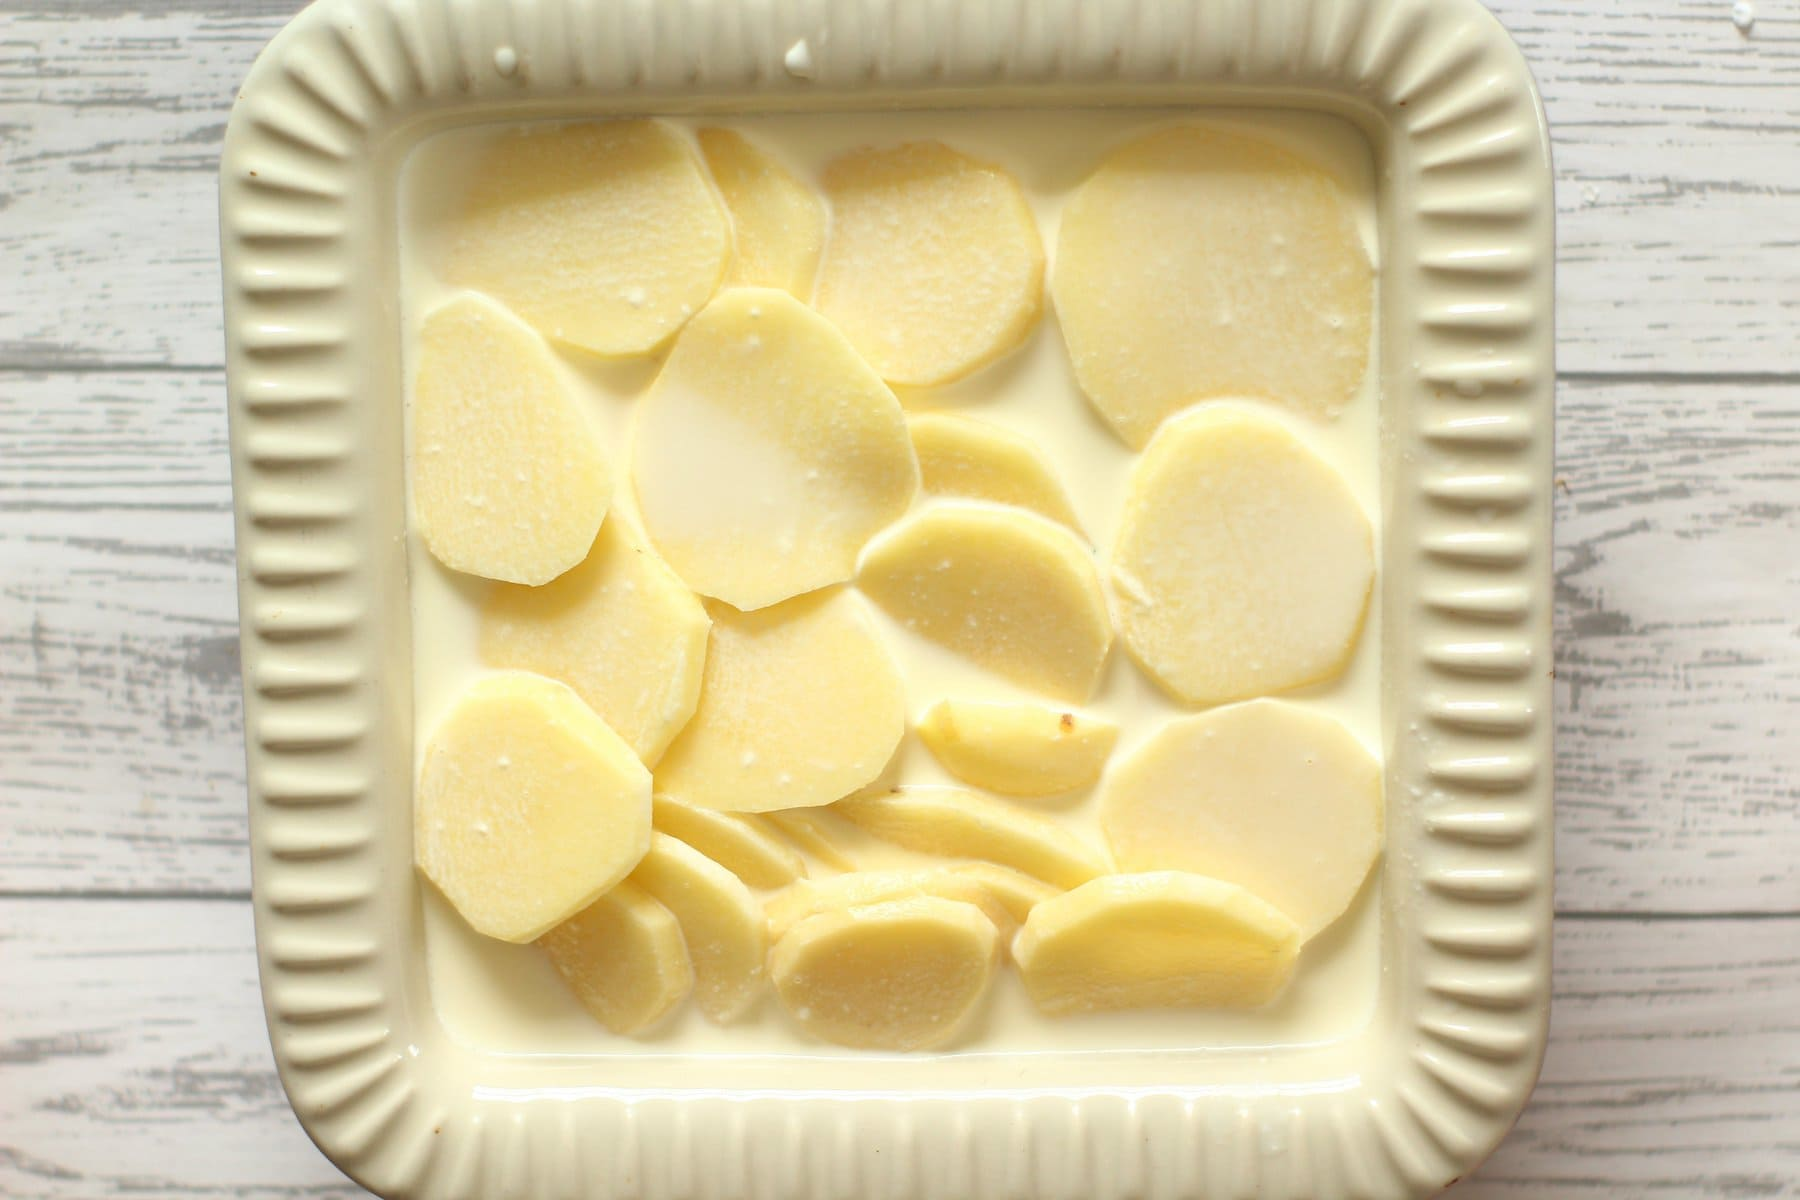 sliced potatoes ready for baking